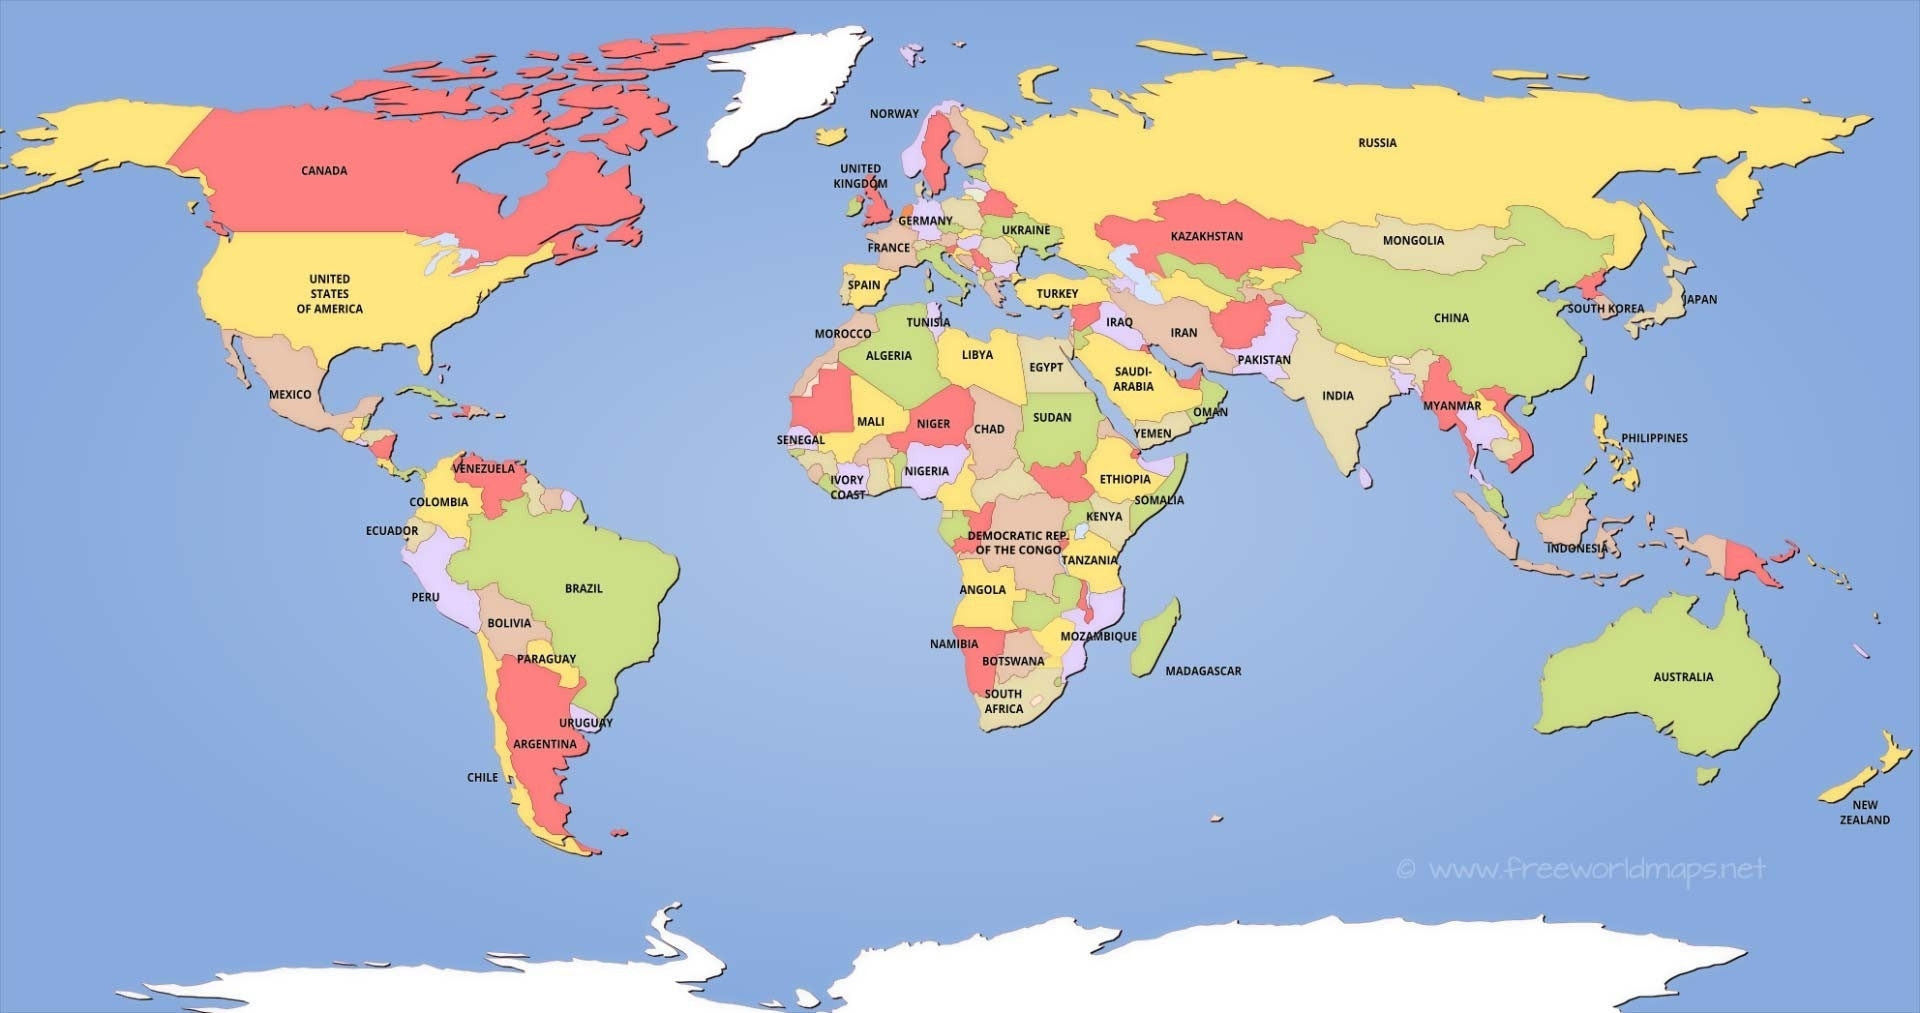 10 top map of the world hd full hd 1080p for pc background title world map image download hd fresh world map hd image free download dimension 1920 x 1013 file type jpgjpeg gumiabroncs Images